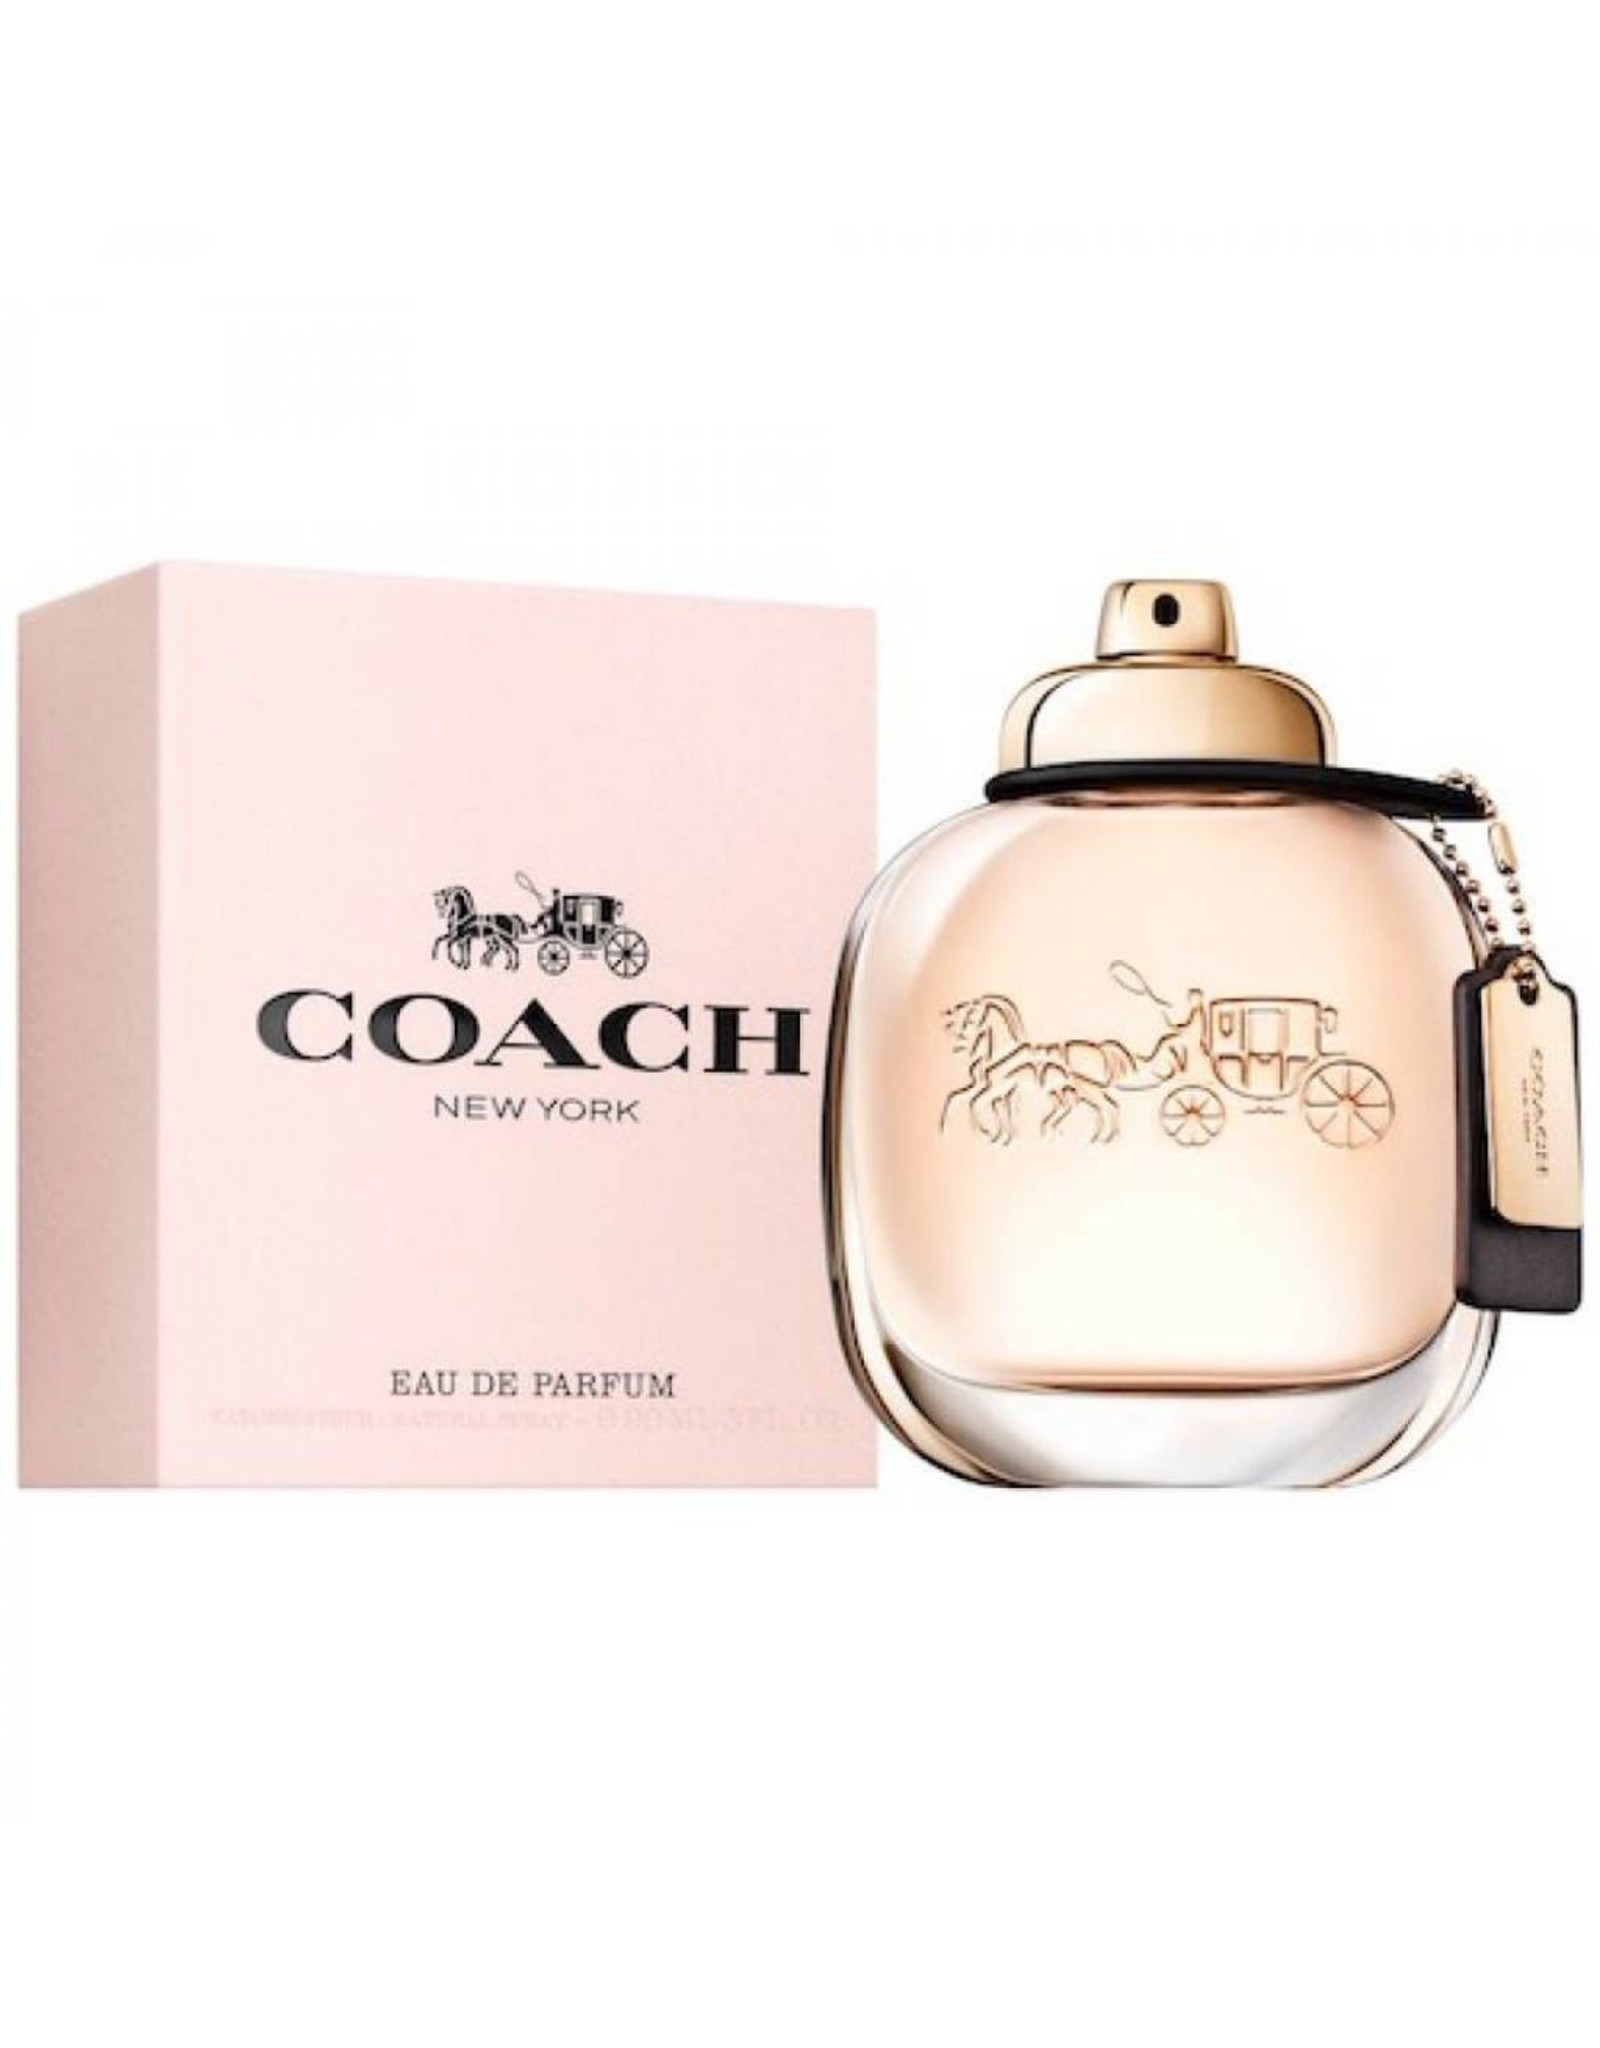 COACH COACH NEW YORK